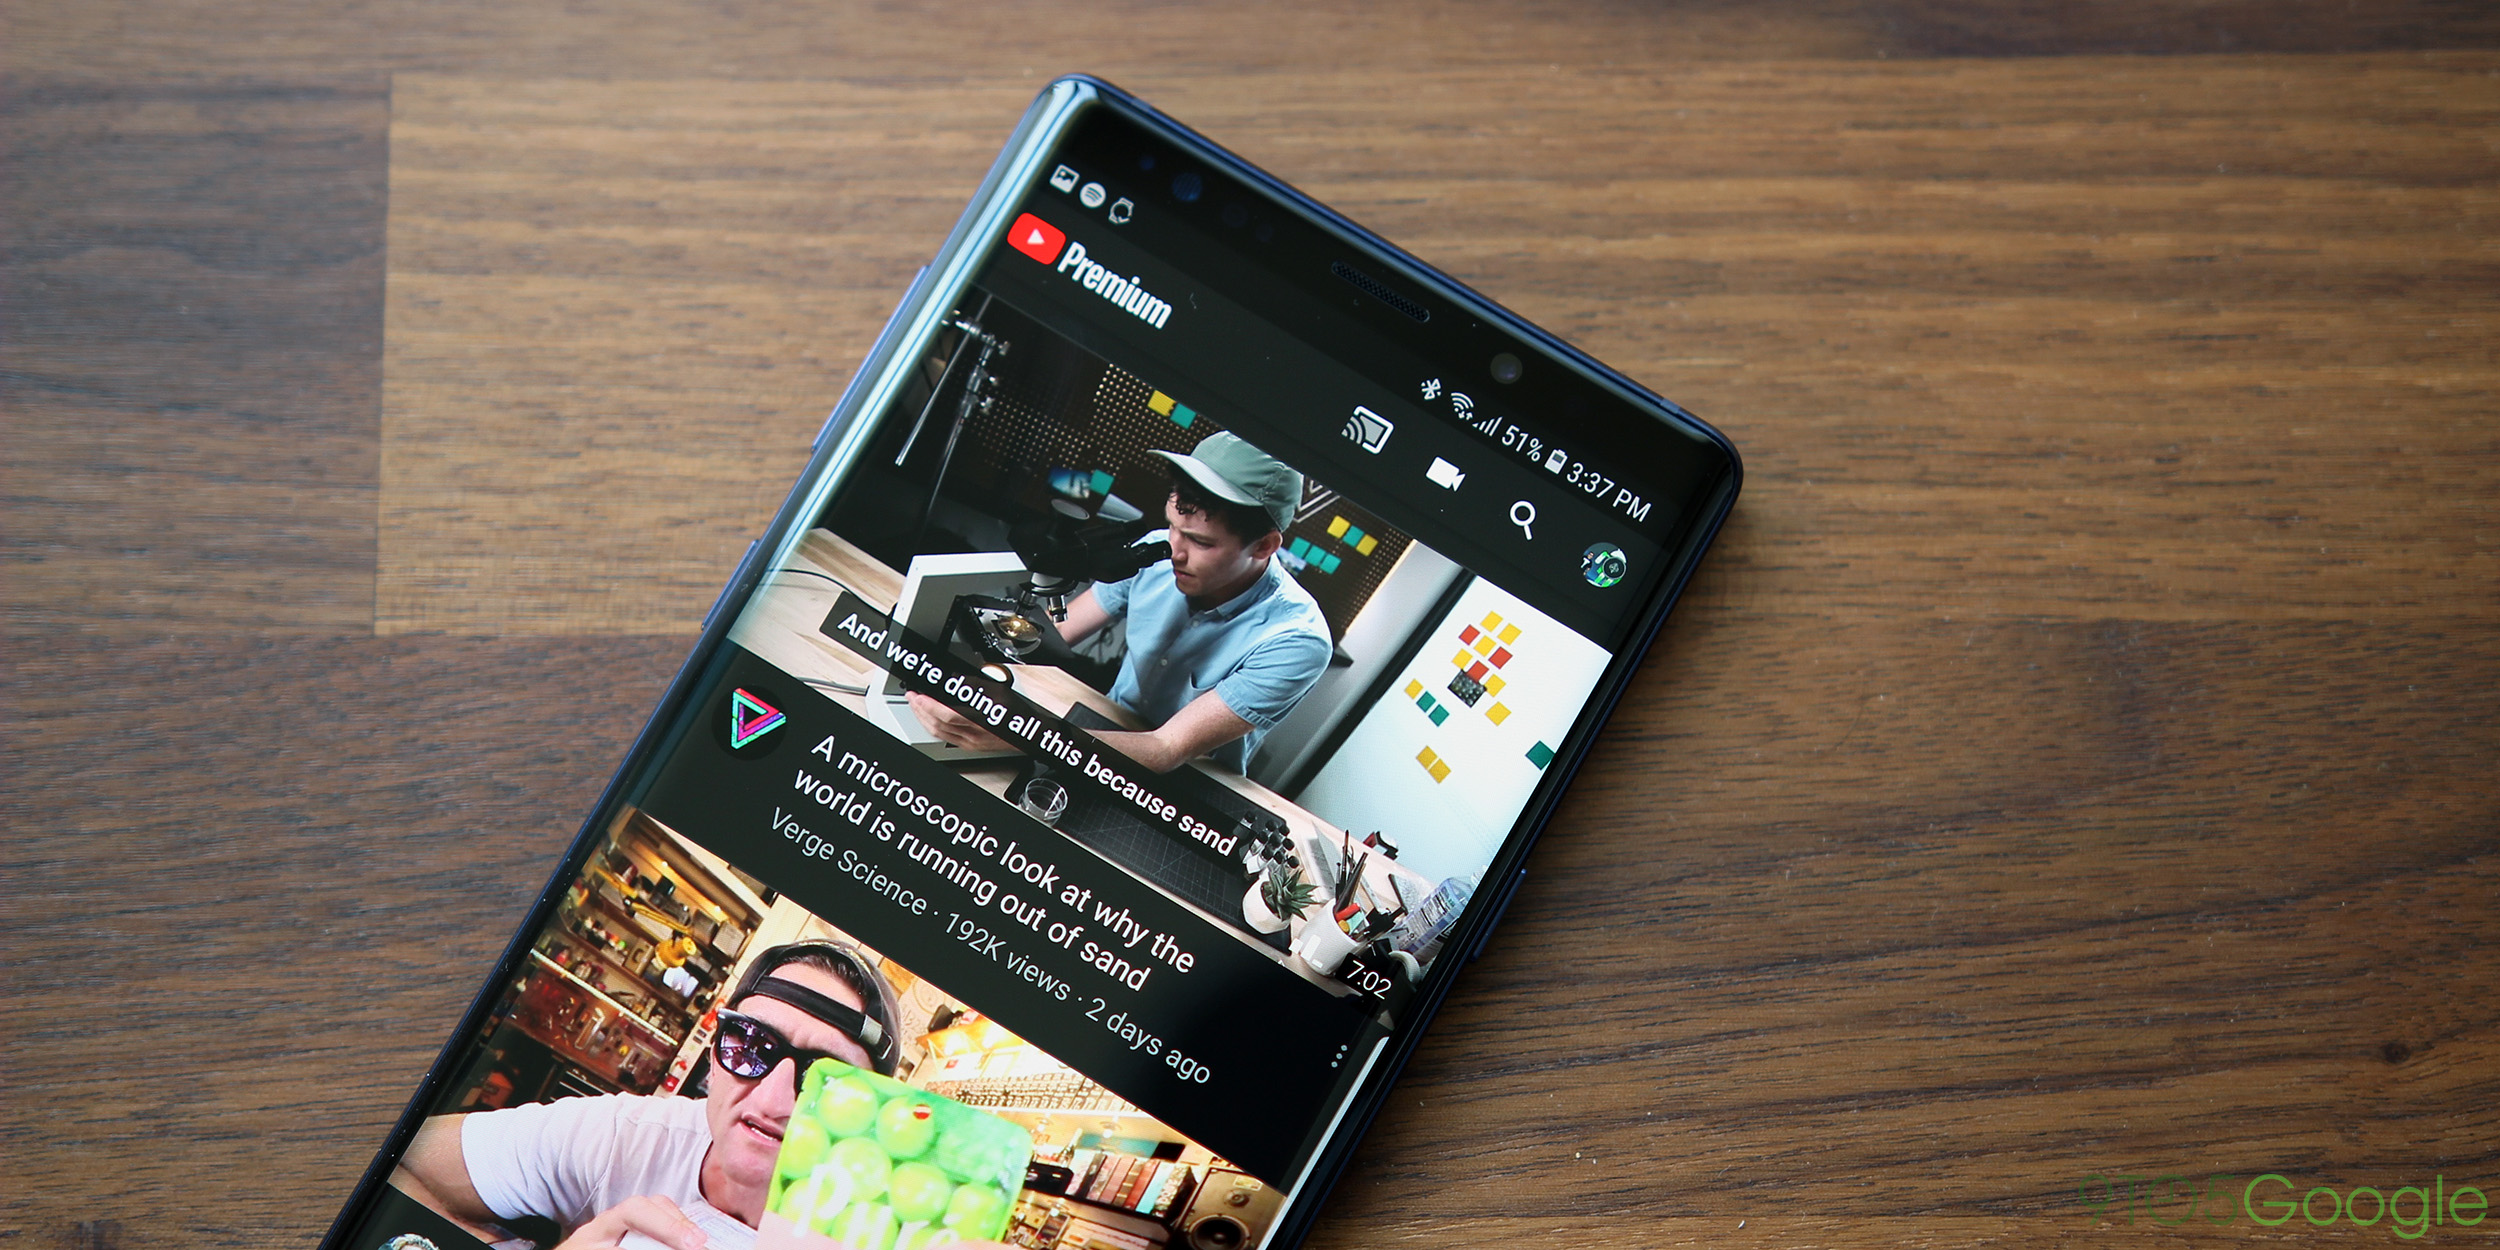 YouTube Premium now giving US users $2 in free monthly Super Chat credit